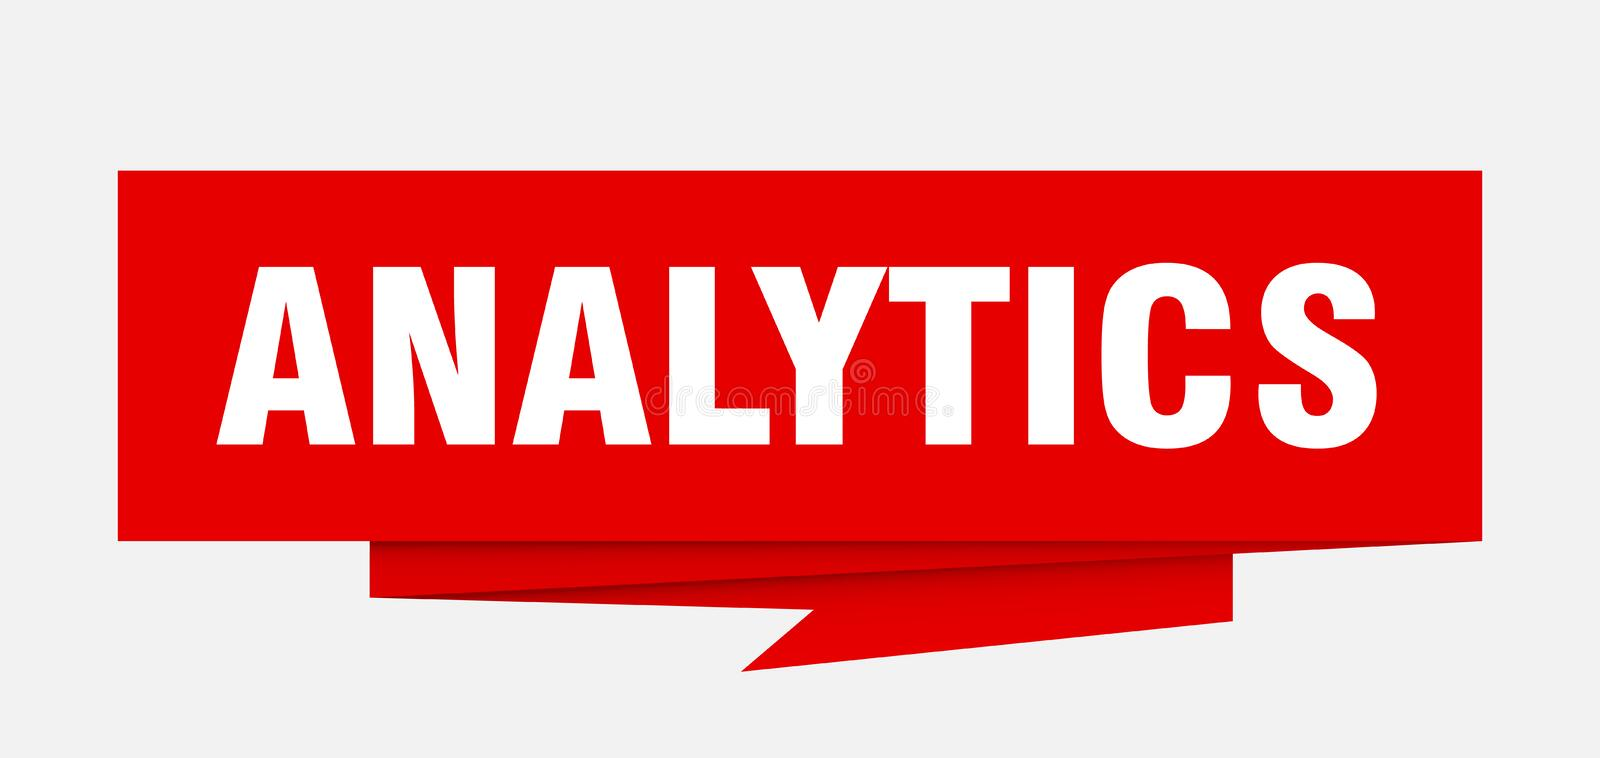 analytics illustration libre de droits